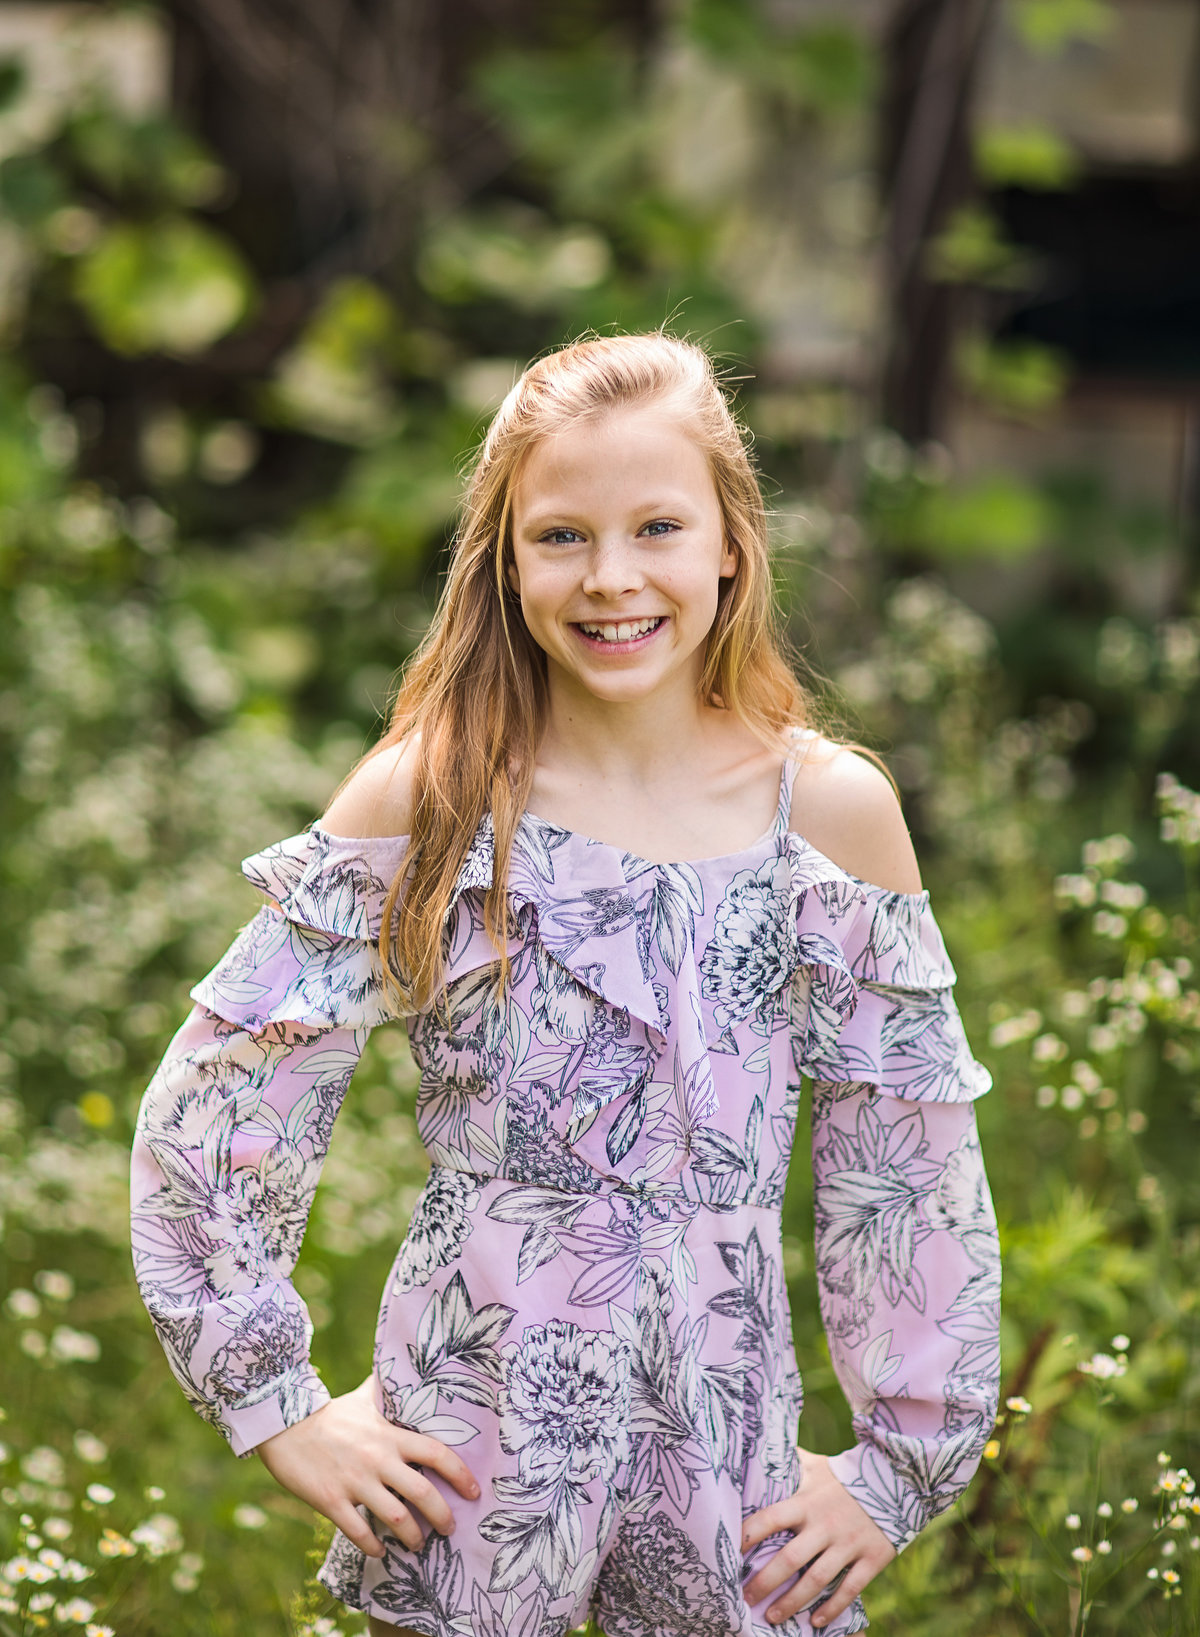 Christy Fassnacht Photography Tweens Teens 2018 7890